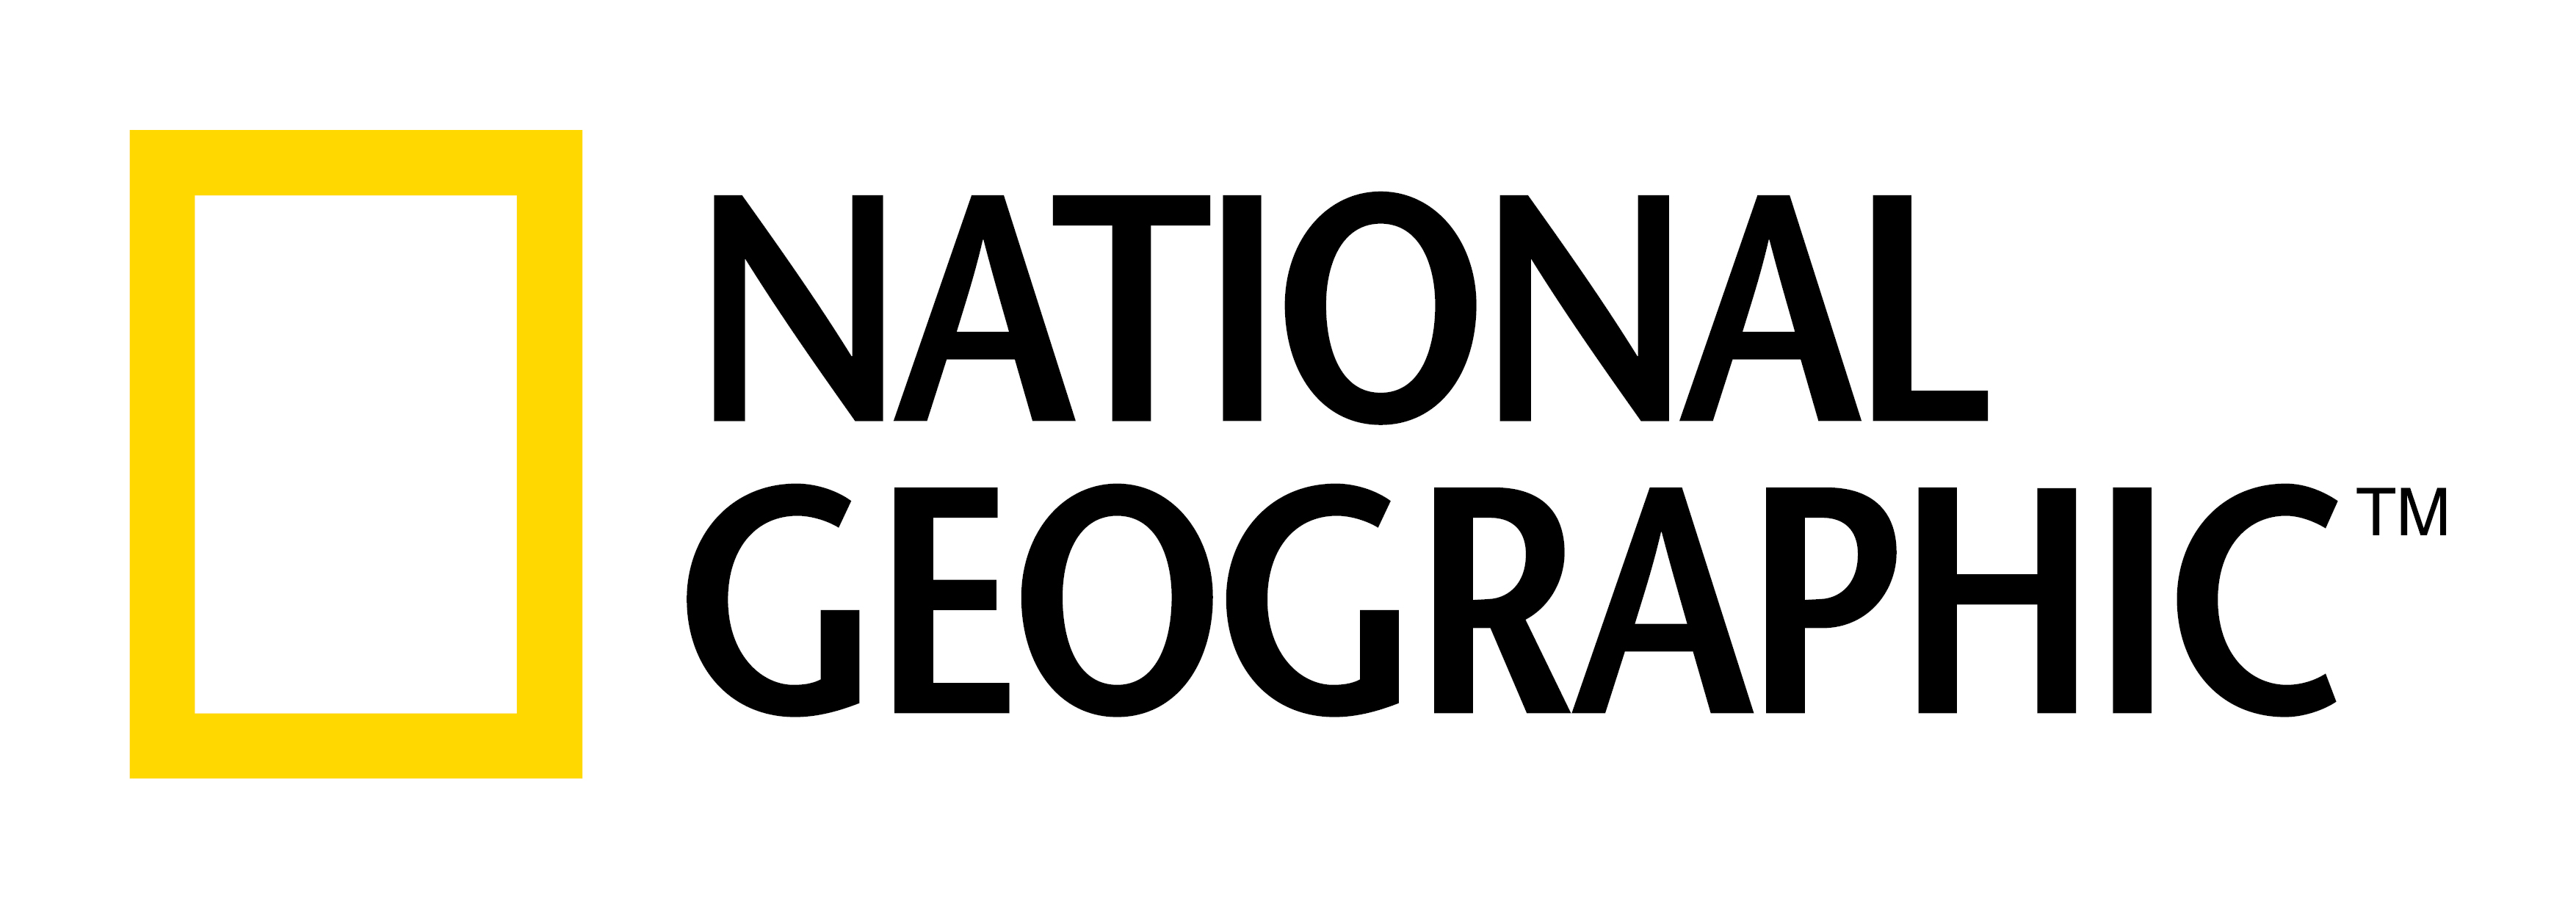 National Geographic Logo Vector PNG - 31192